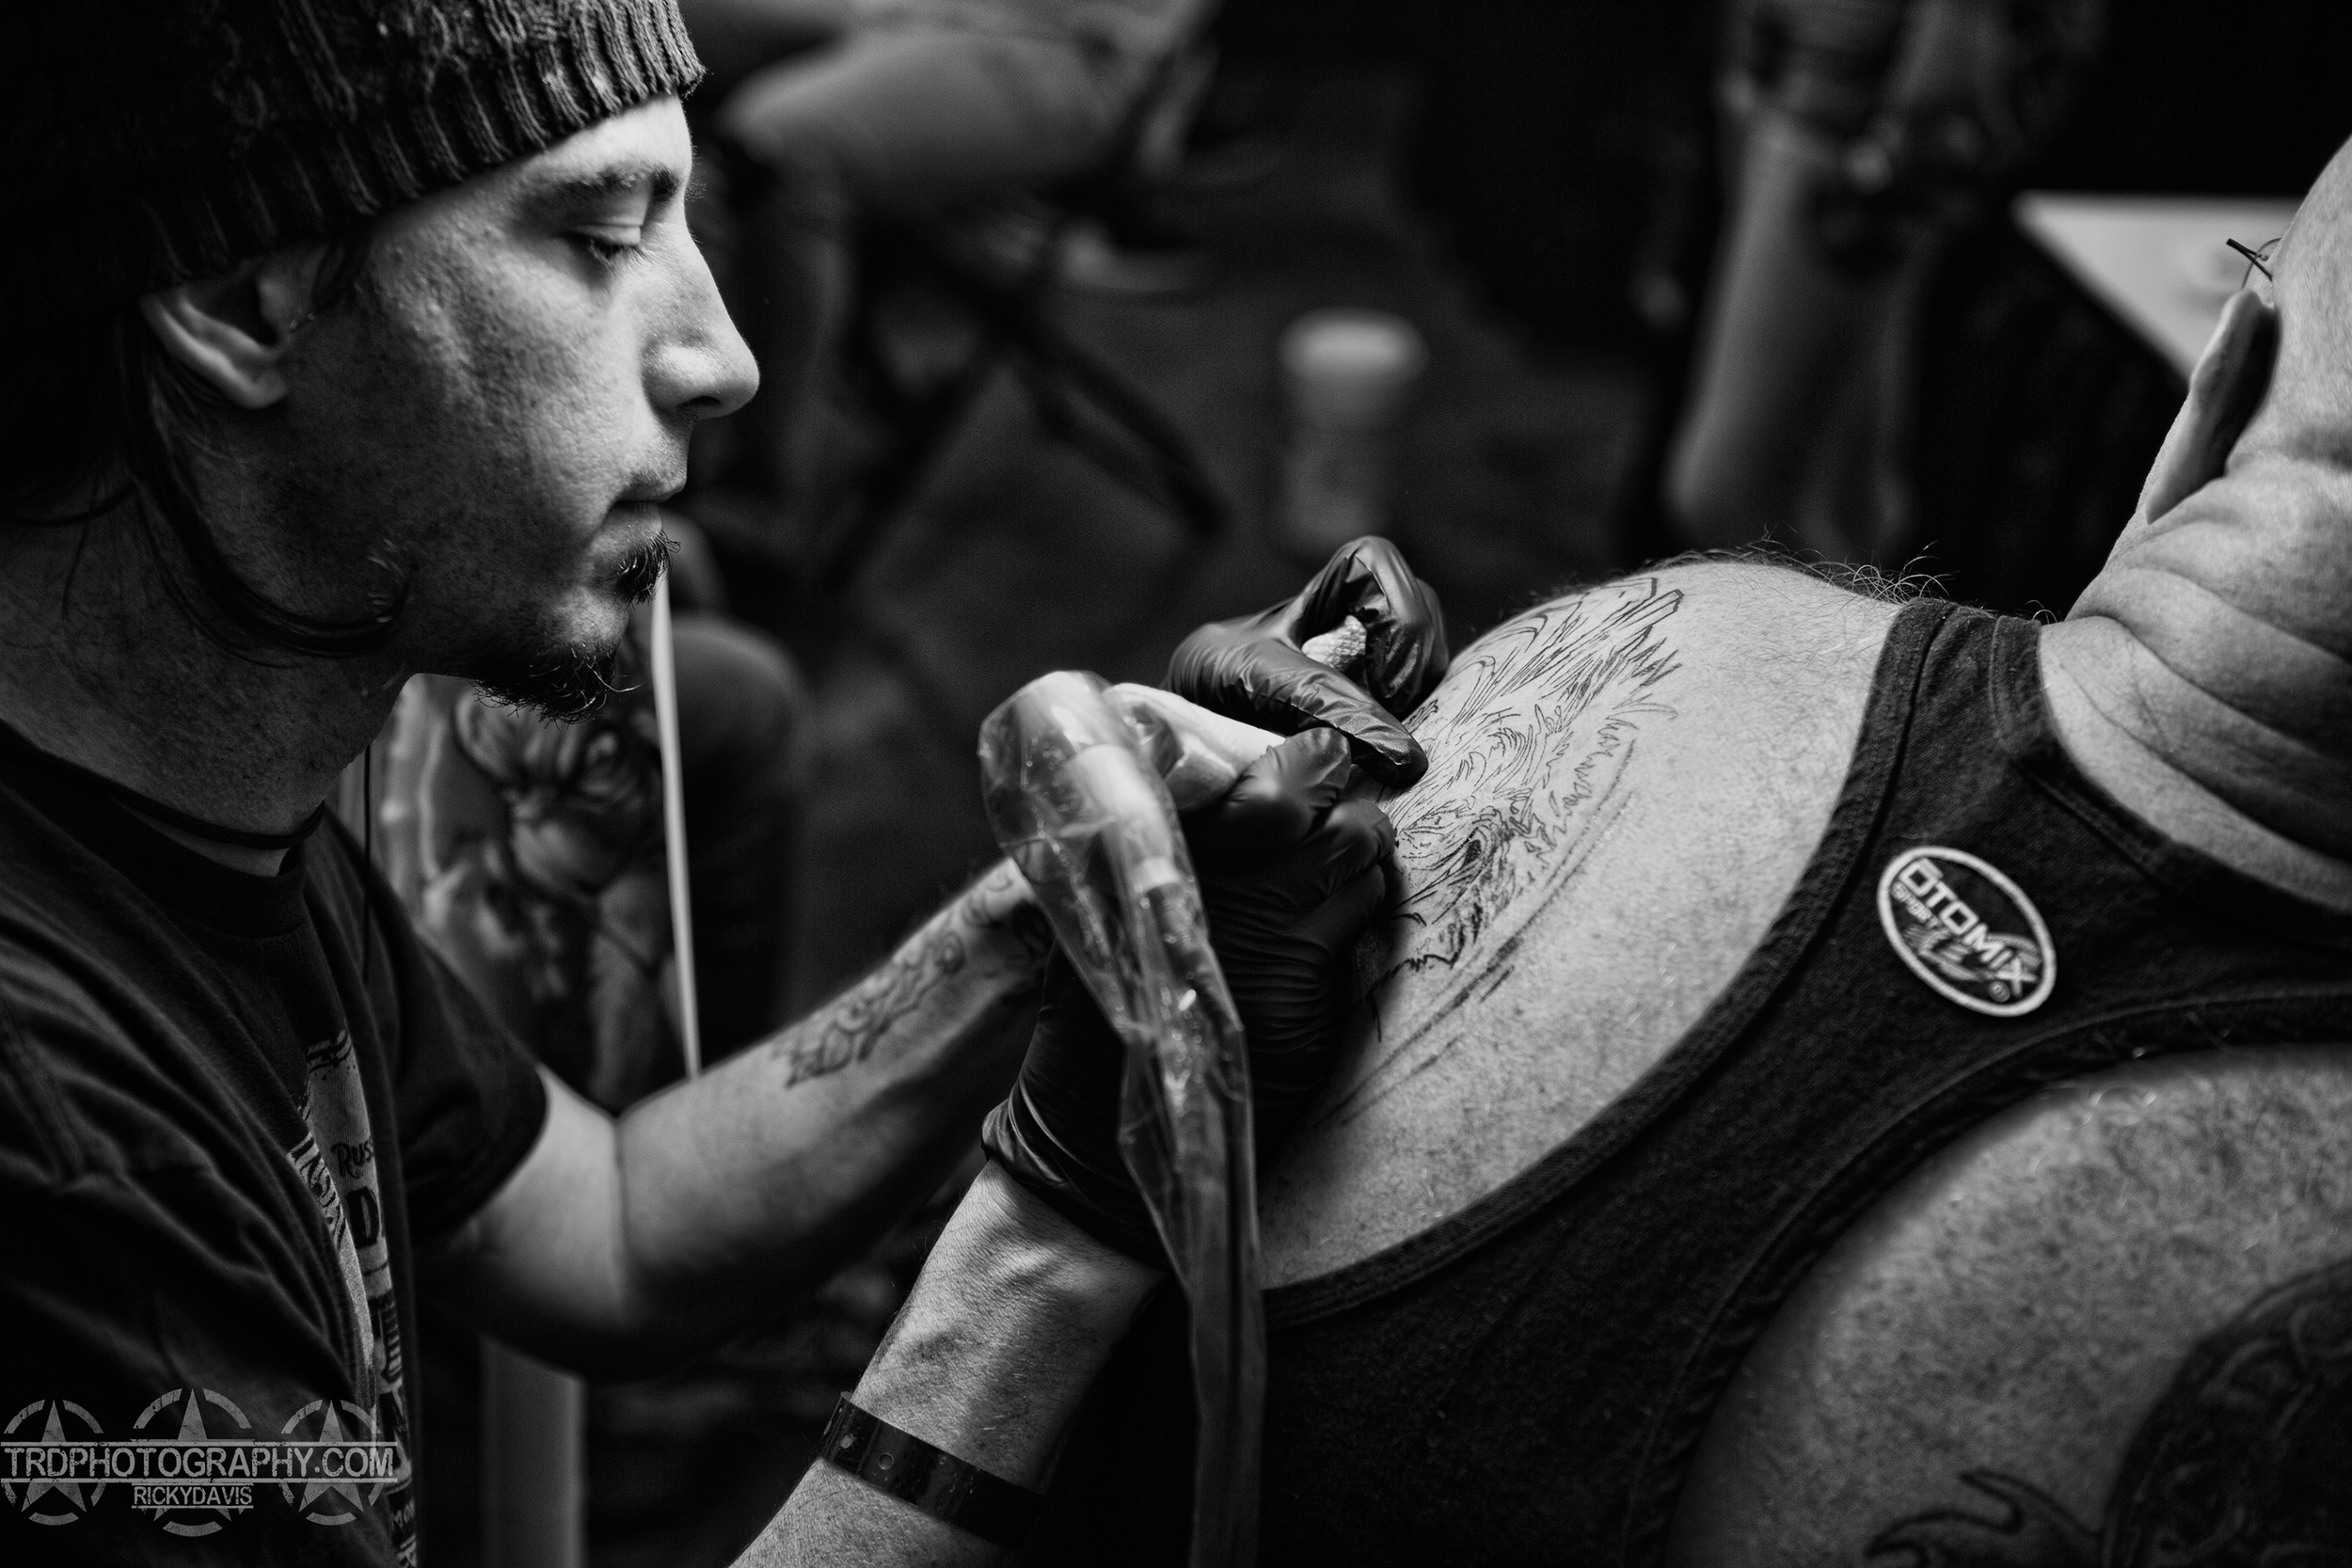 Tattoo Artist Lynn Buckner of Main Line Ink - TRD Photography